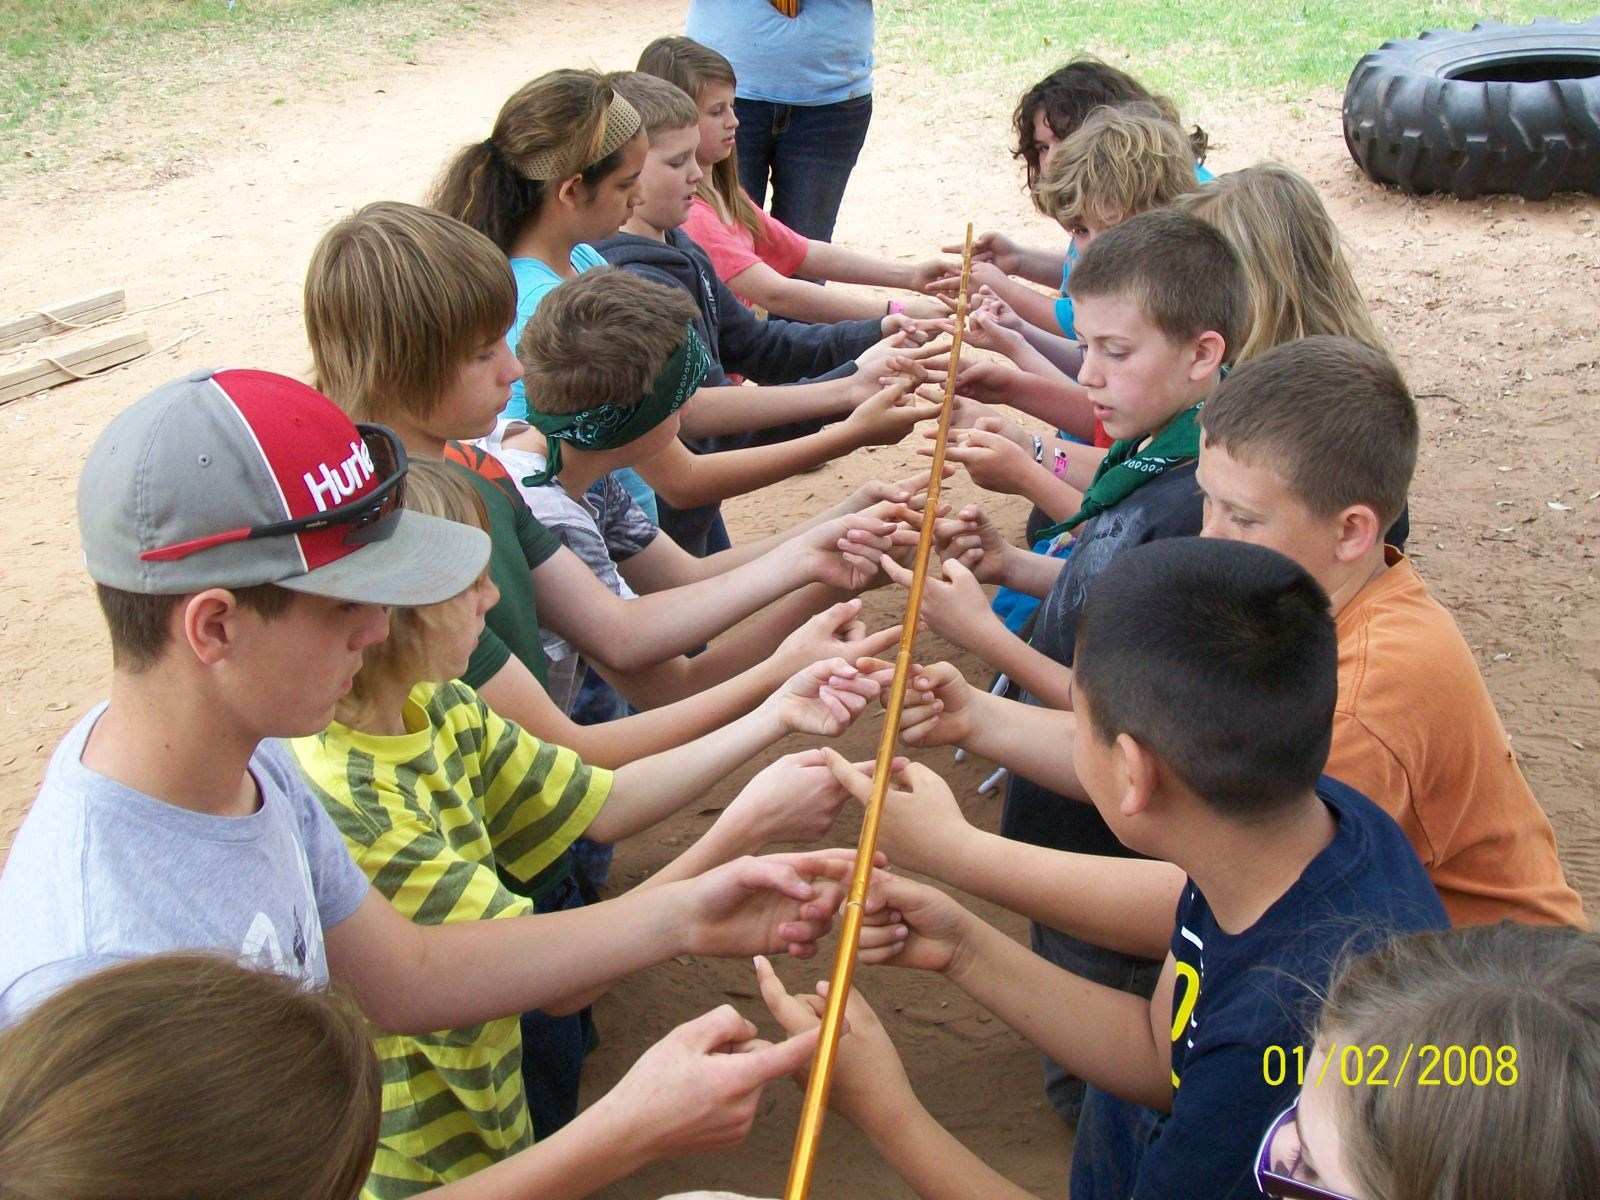 Students working on team building exercise at Camp Grady Spruce